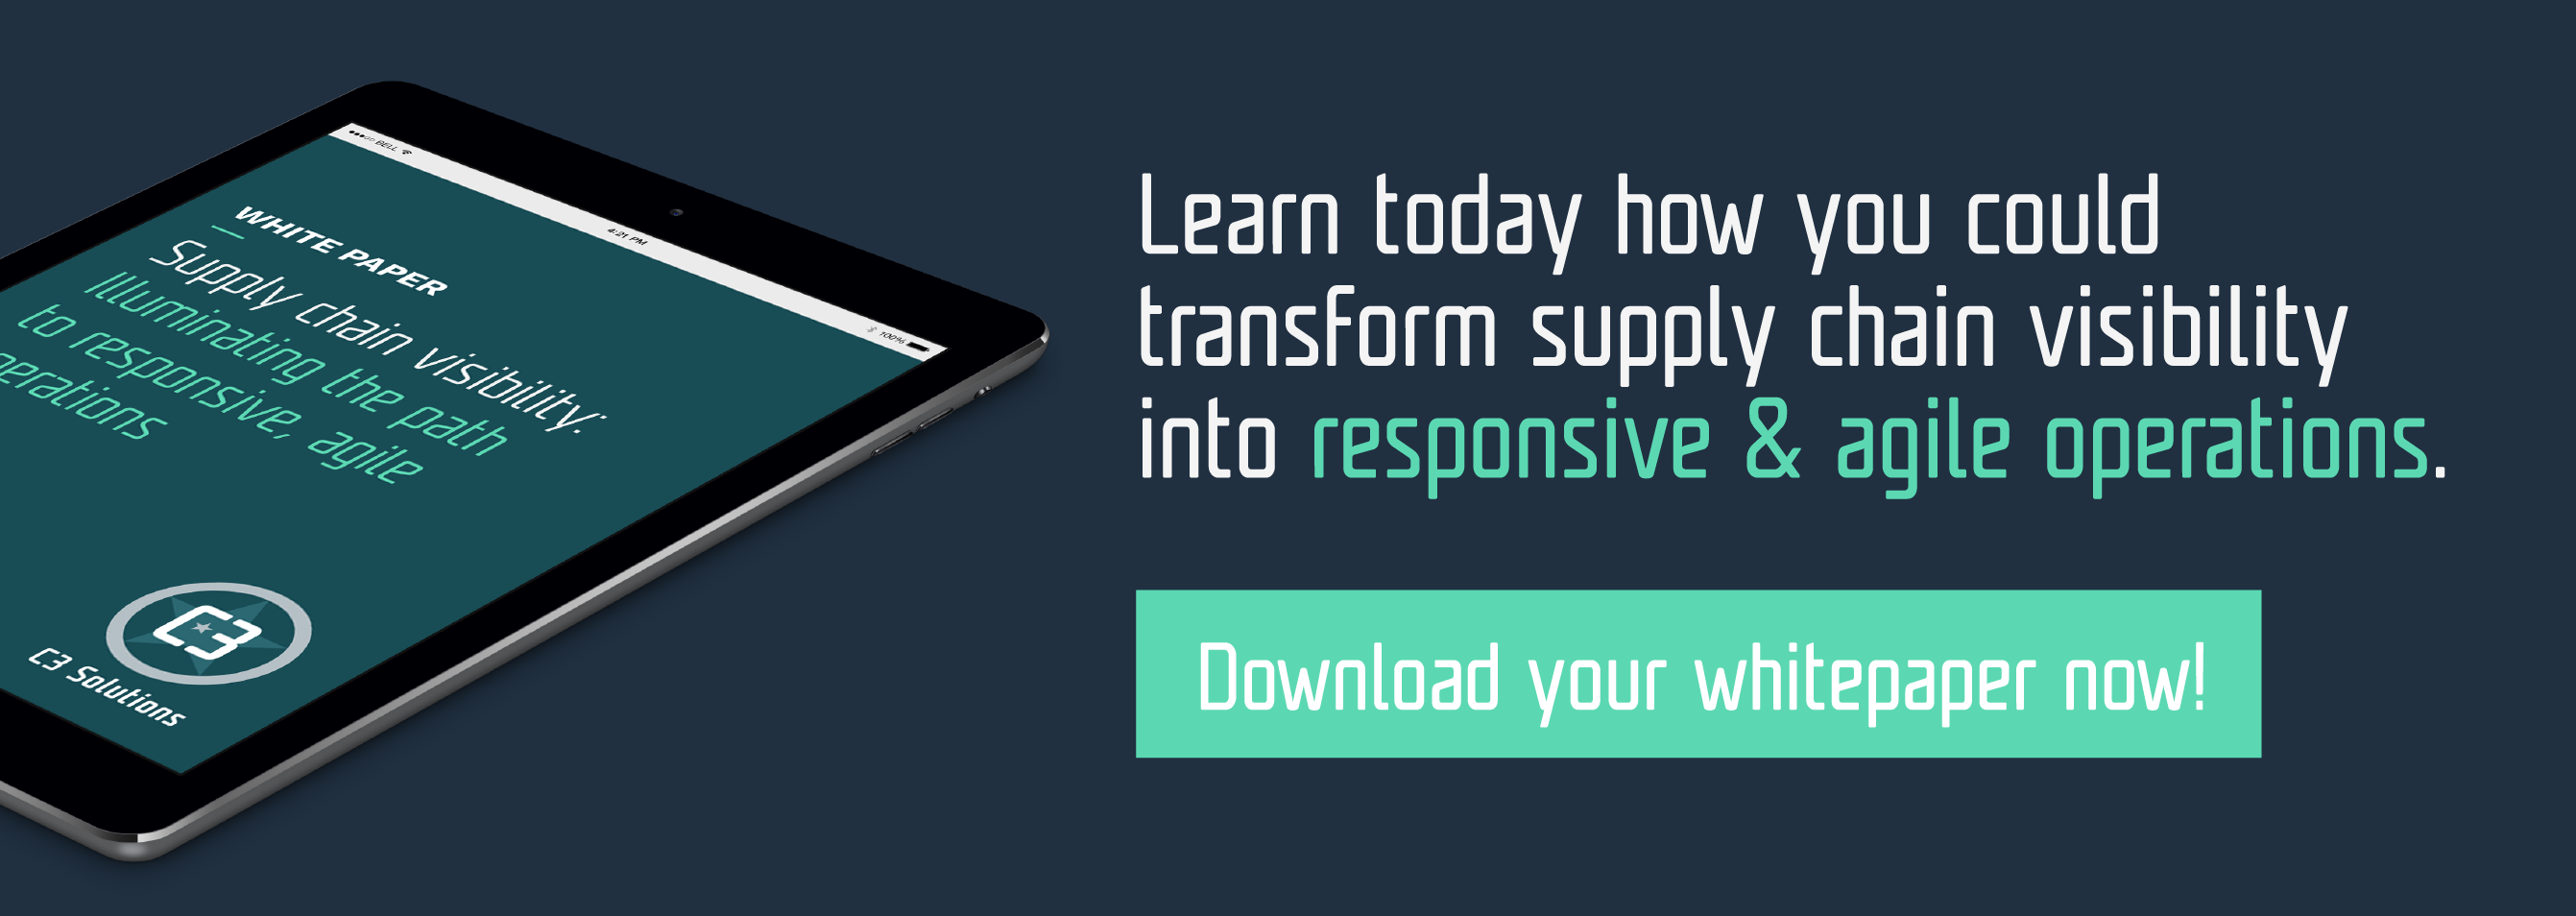 Supply Chain Visibility White Paper CTA.png